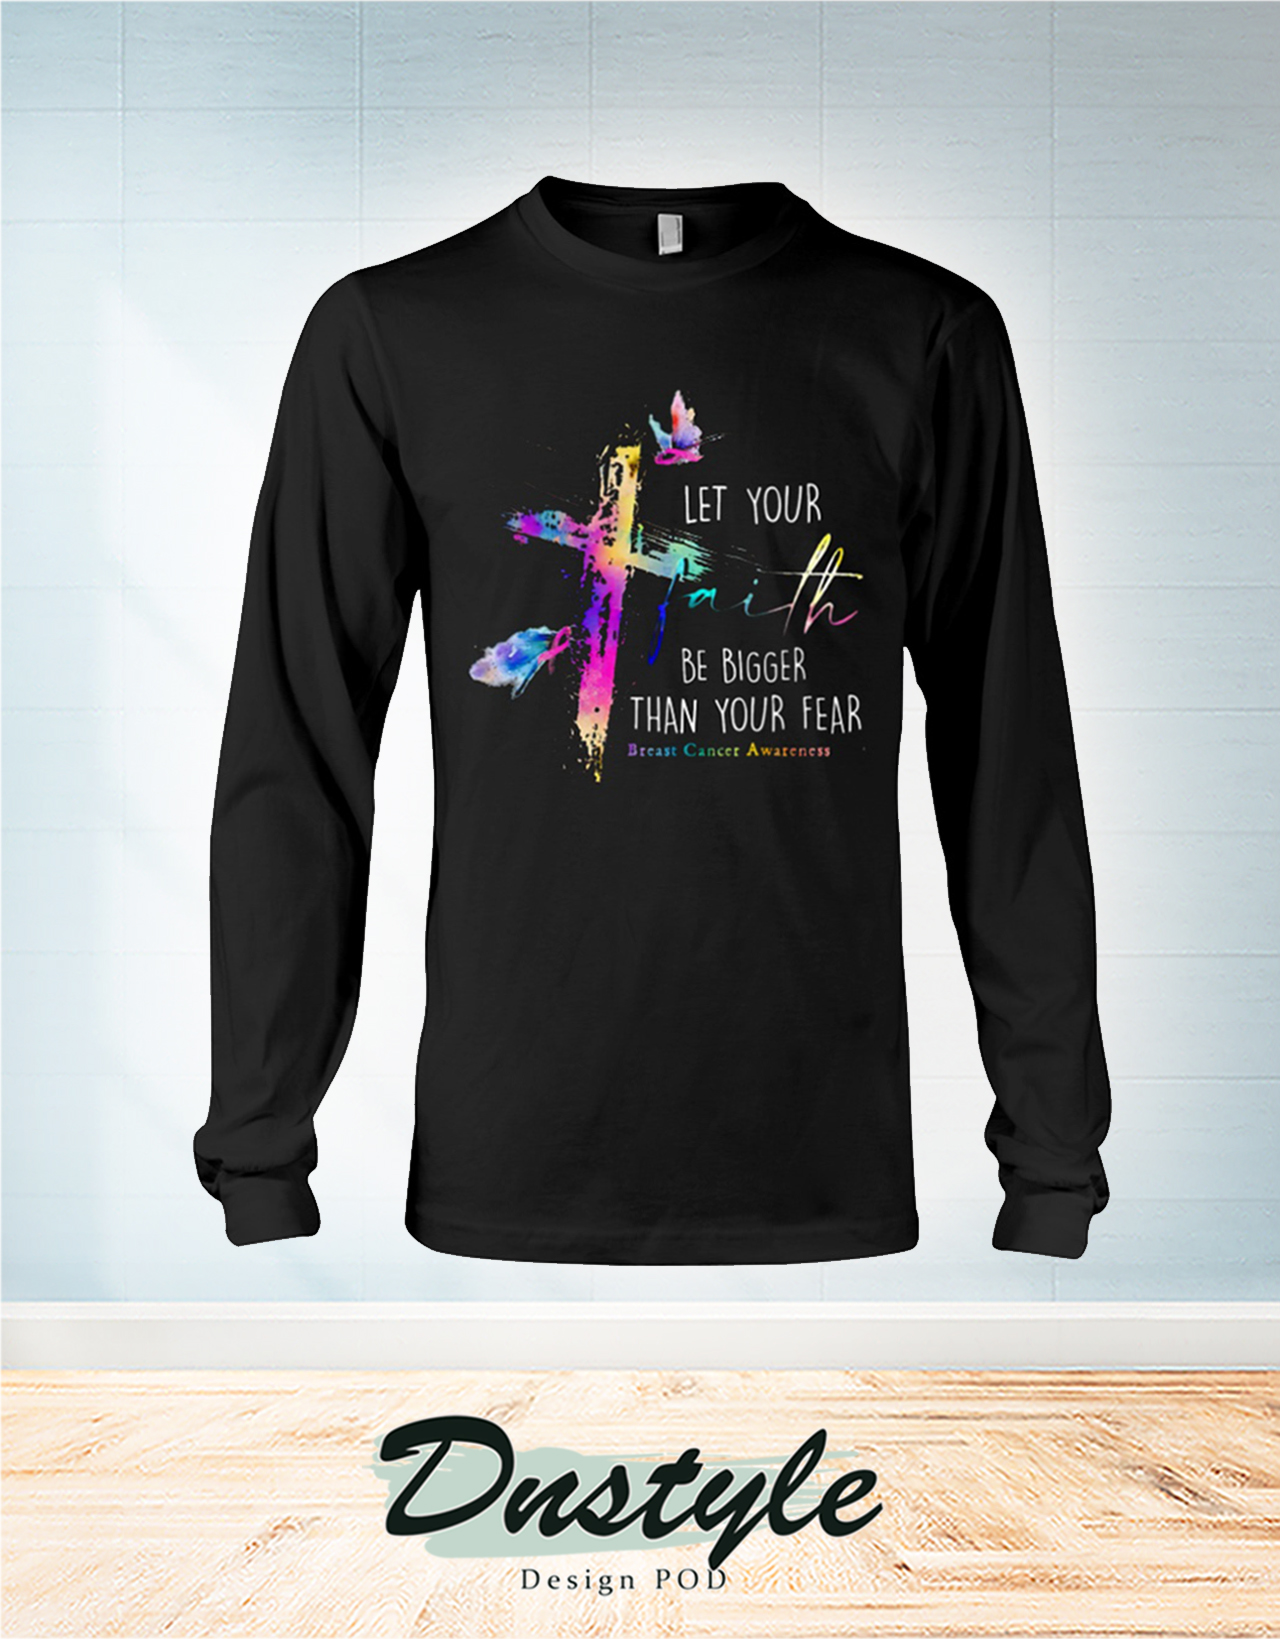 Let your faith be bigger than your fear beast cancer awareness long sleeve